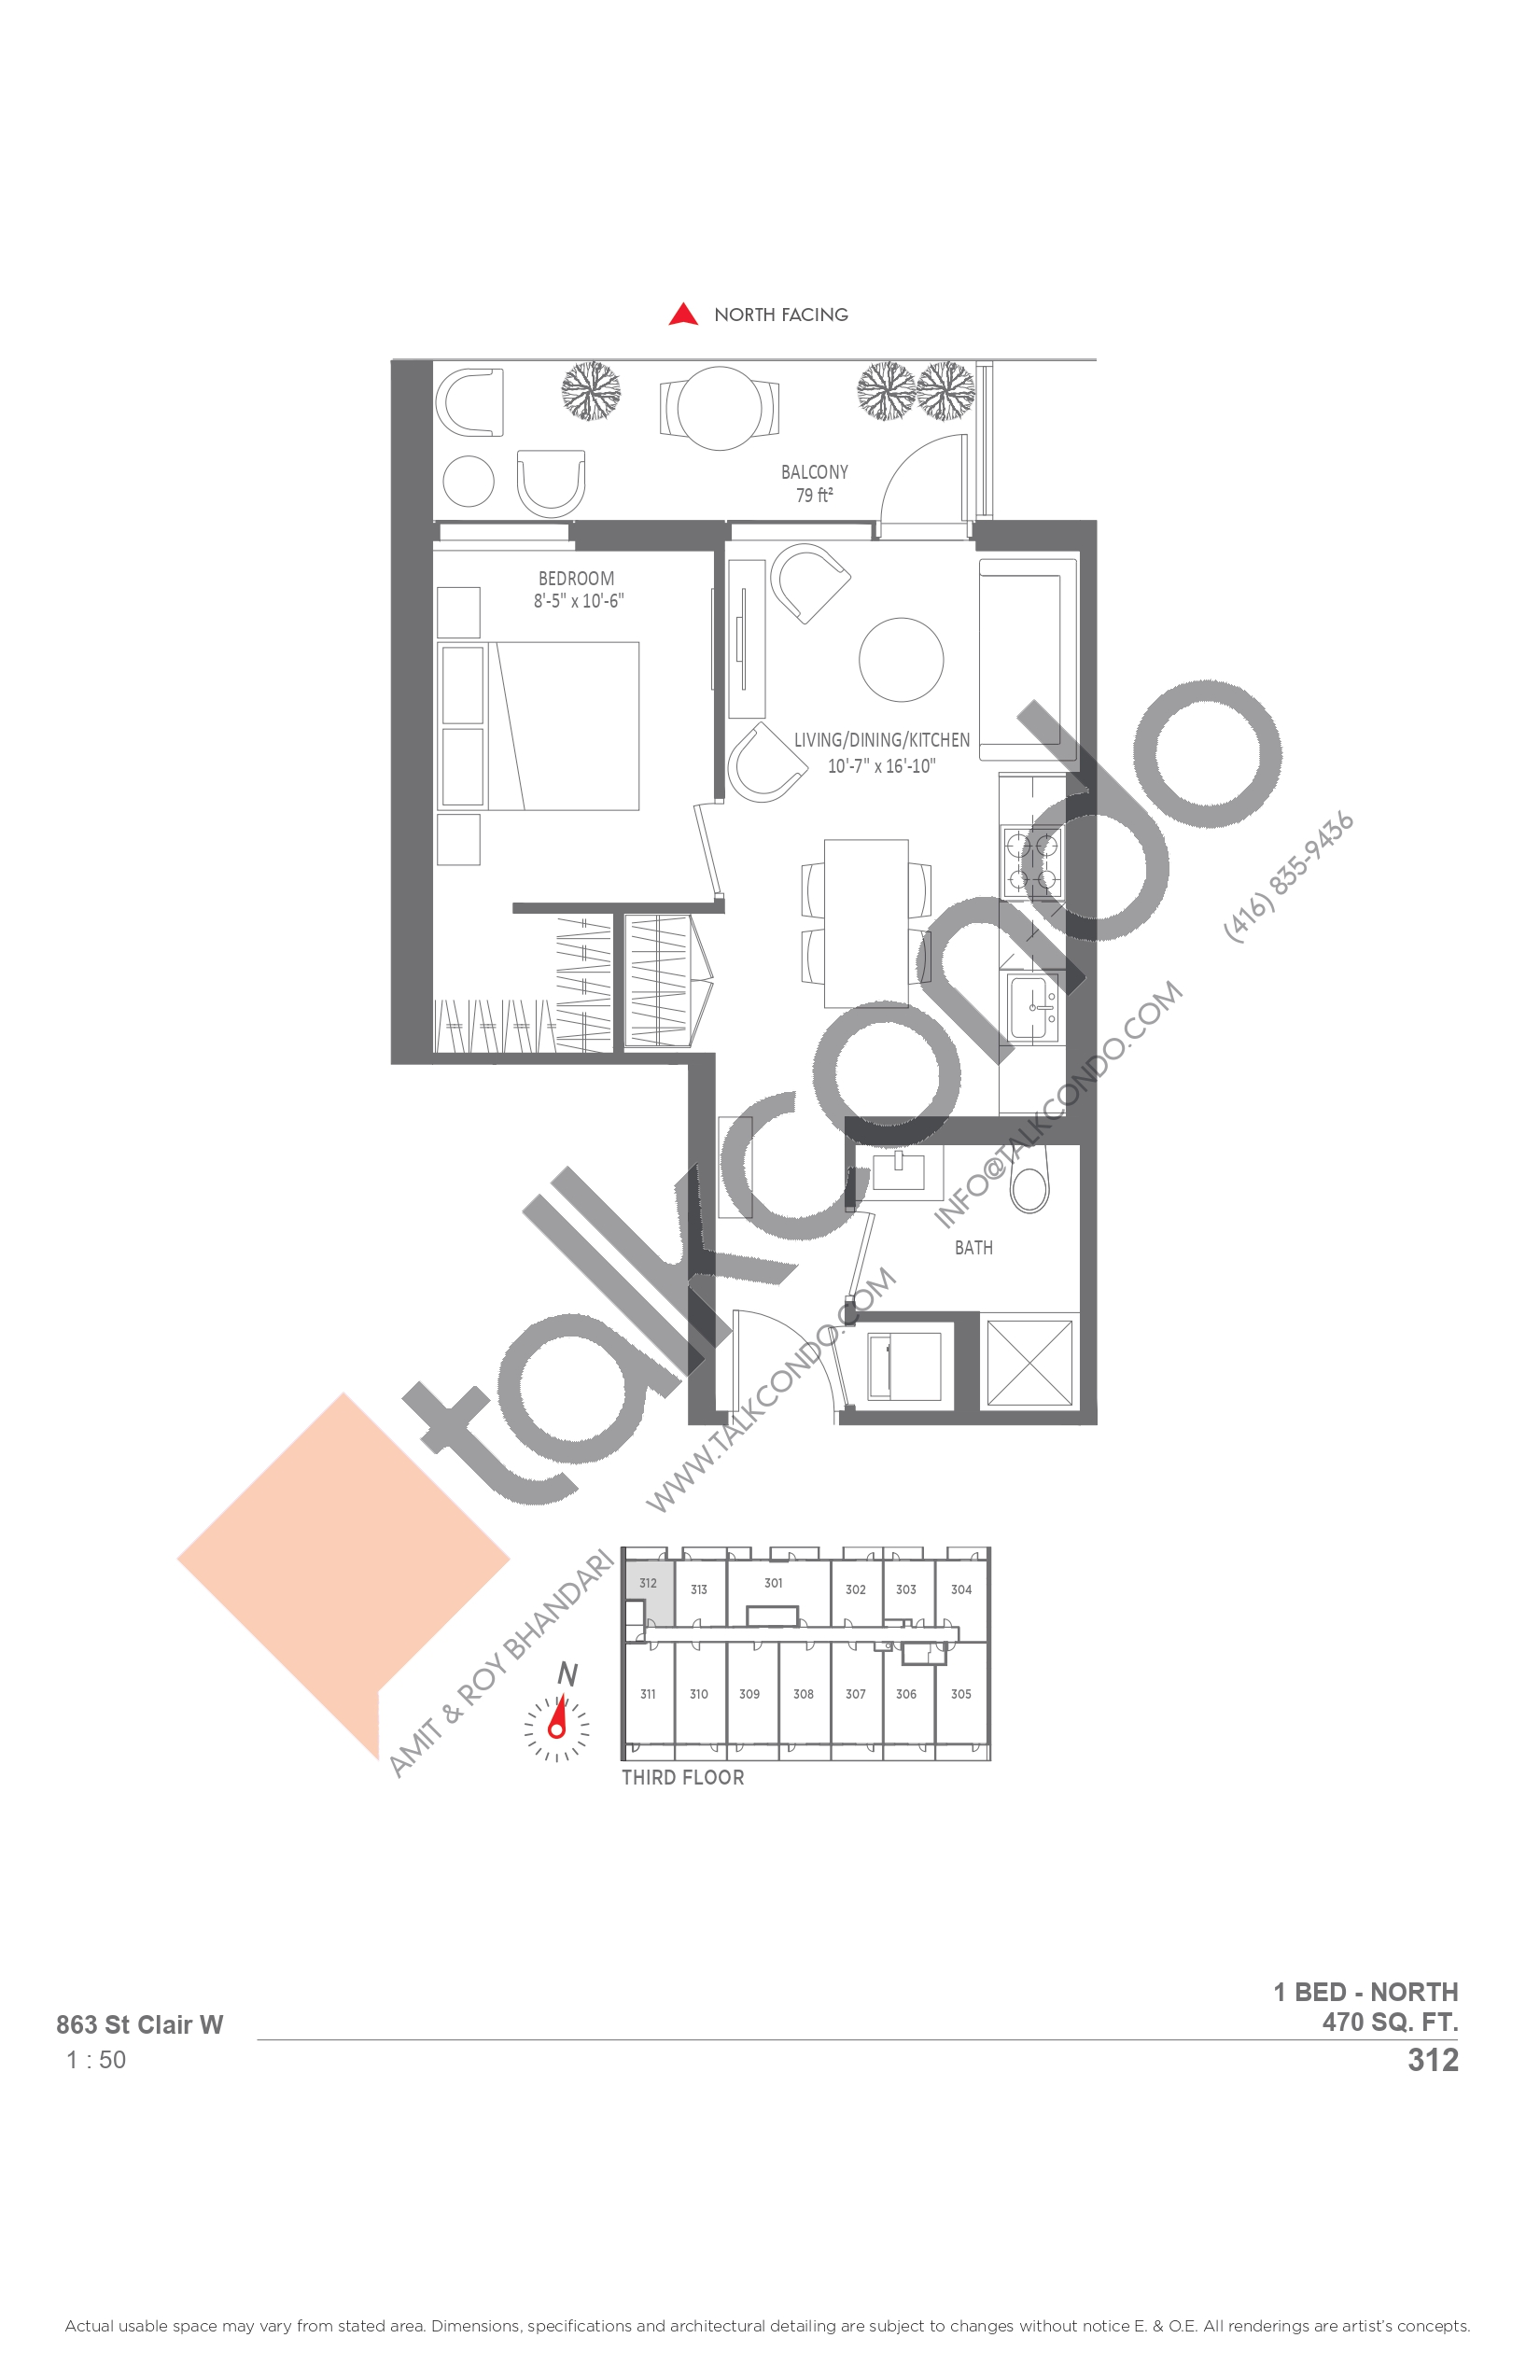 312 Floor Plan at Monza Condos - 470 sq.ft